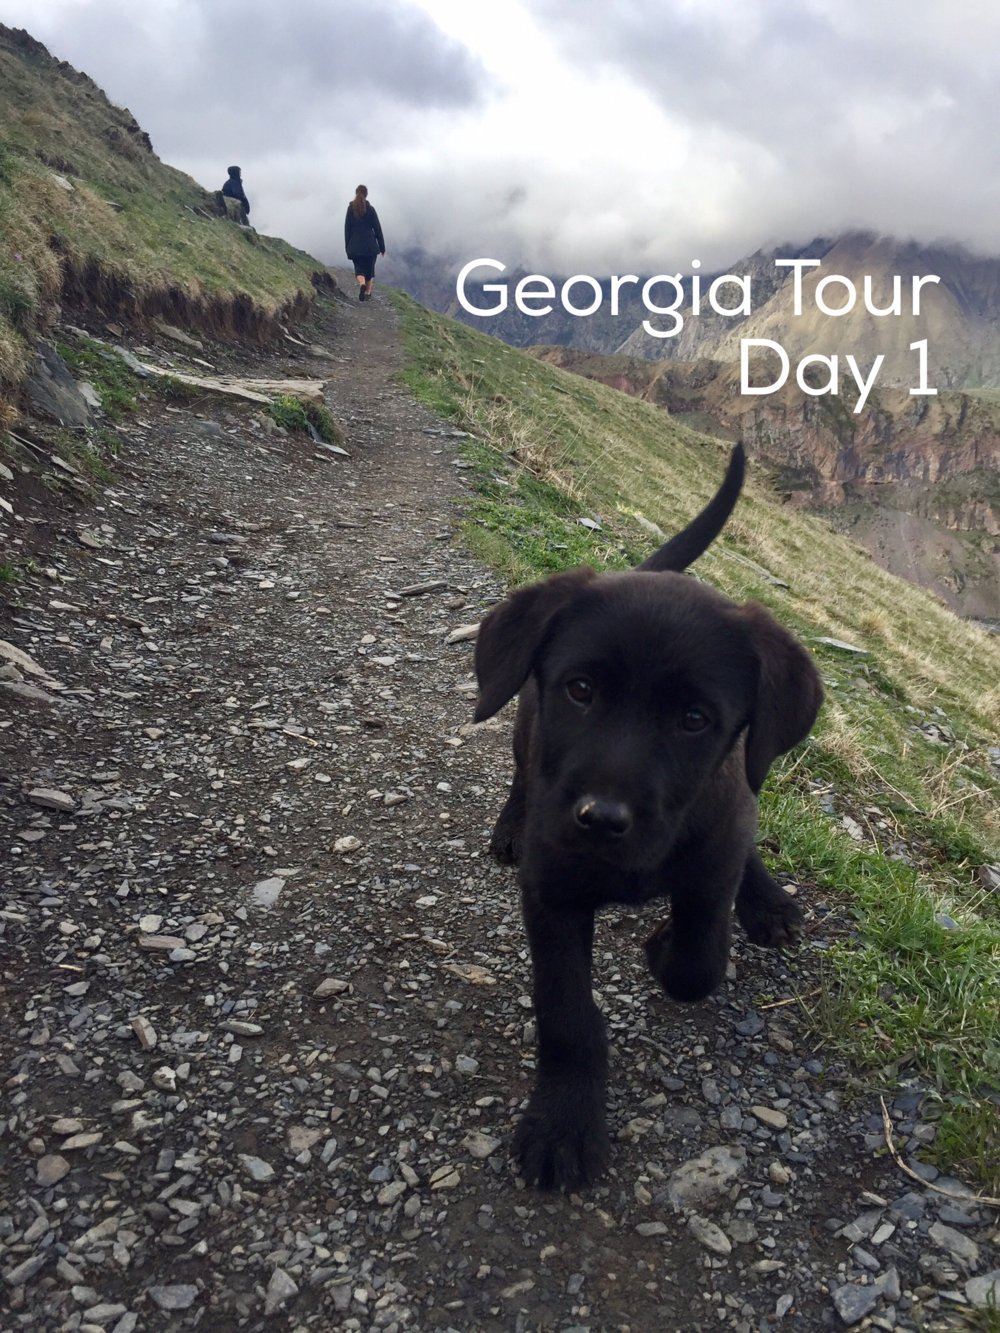 Republic of Georgia Tour